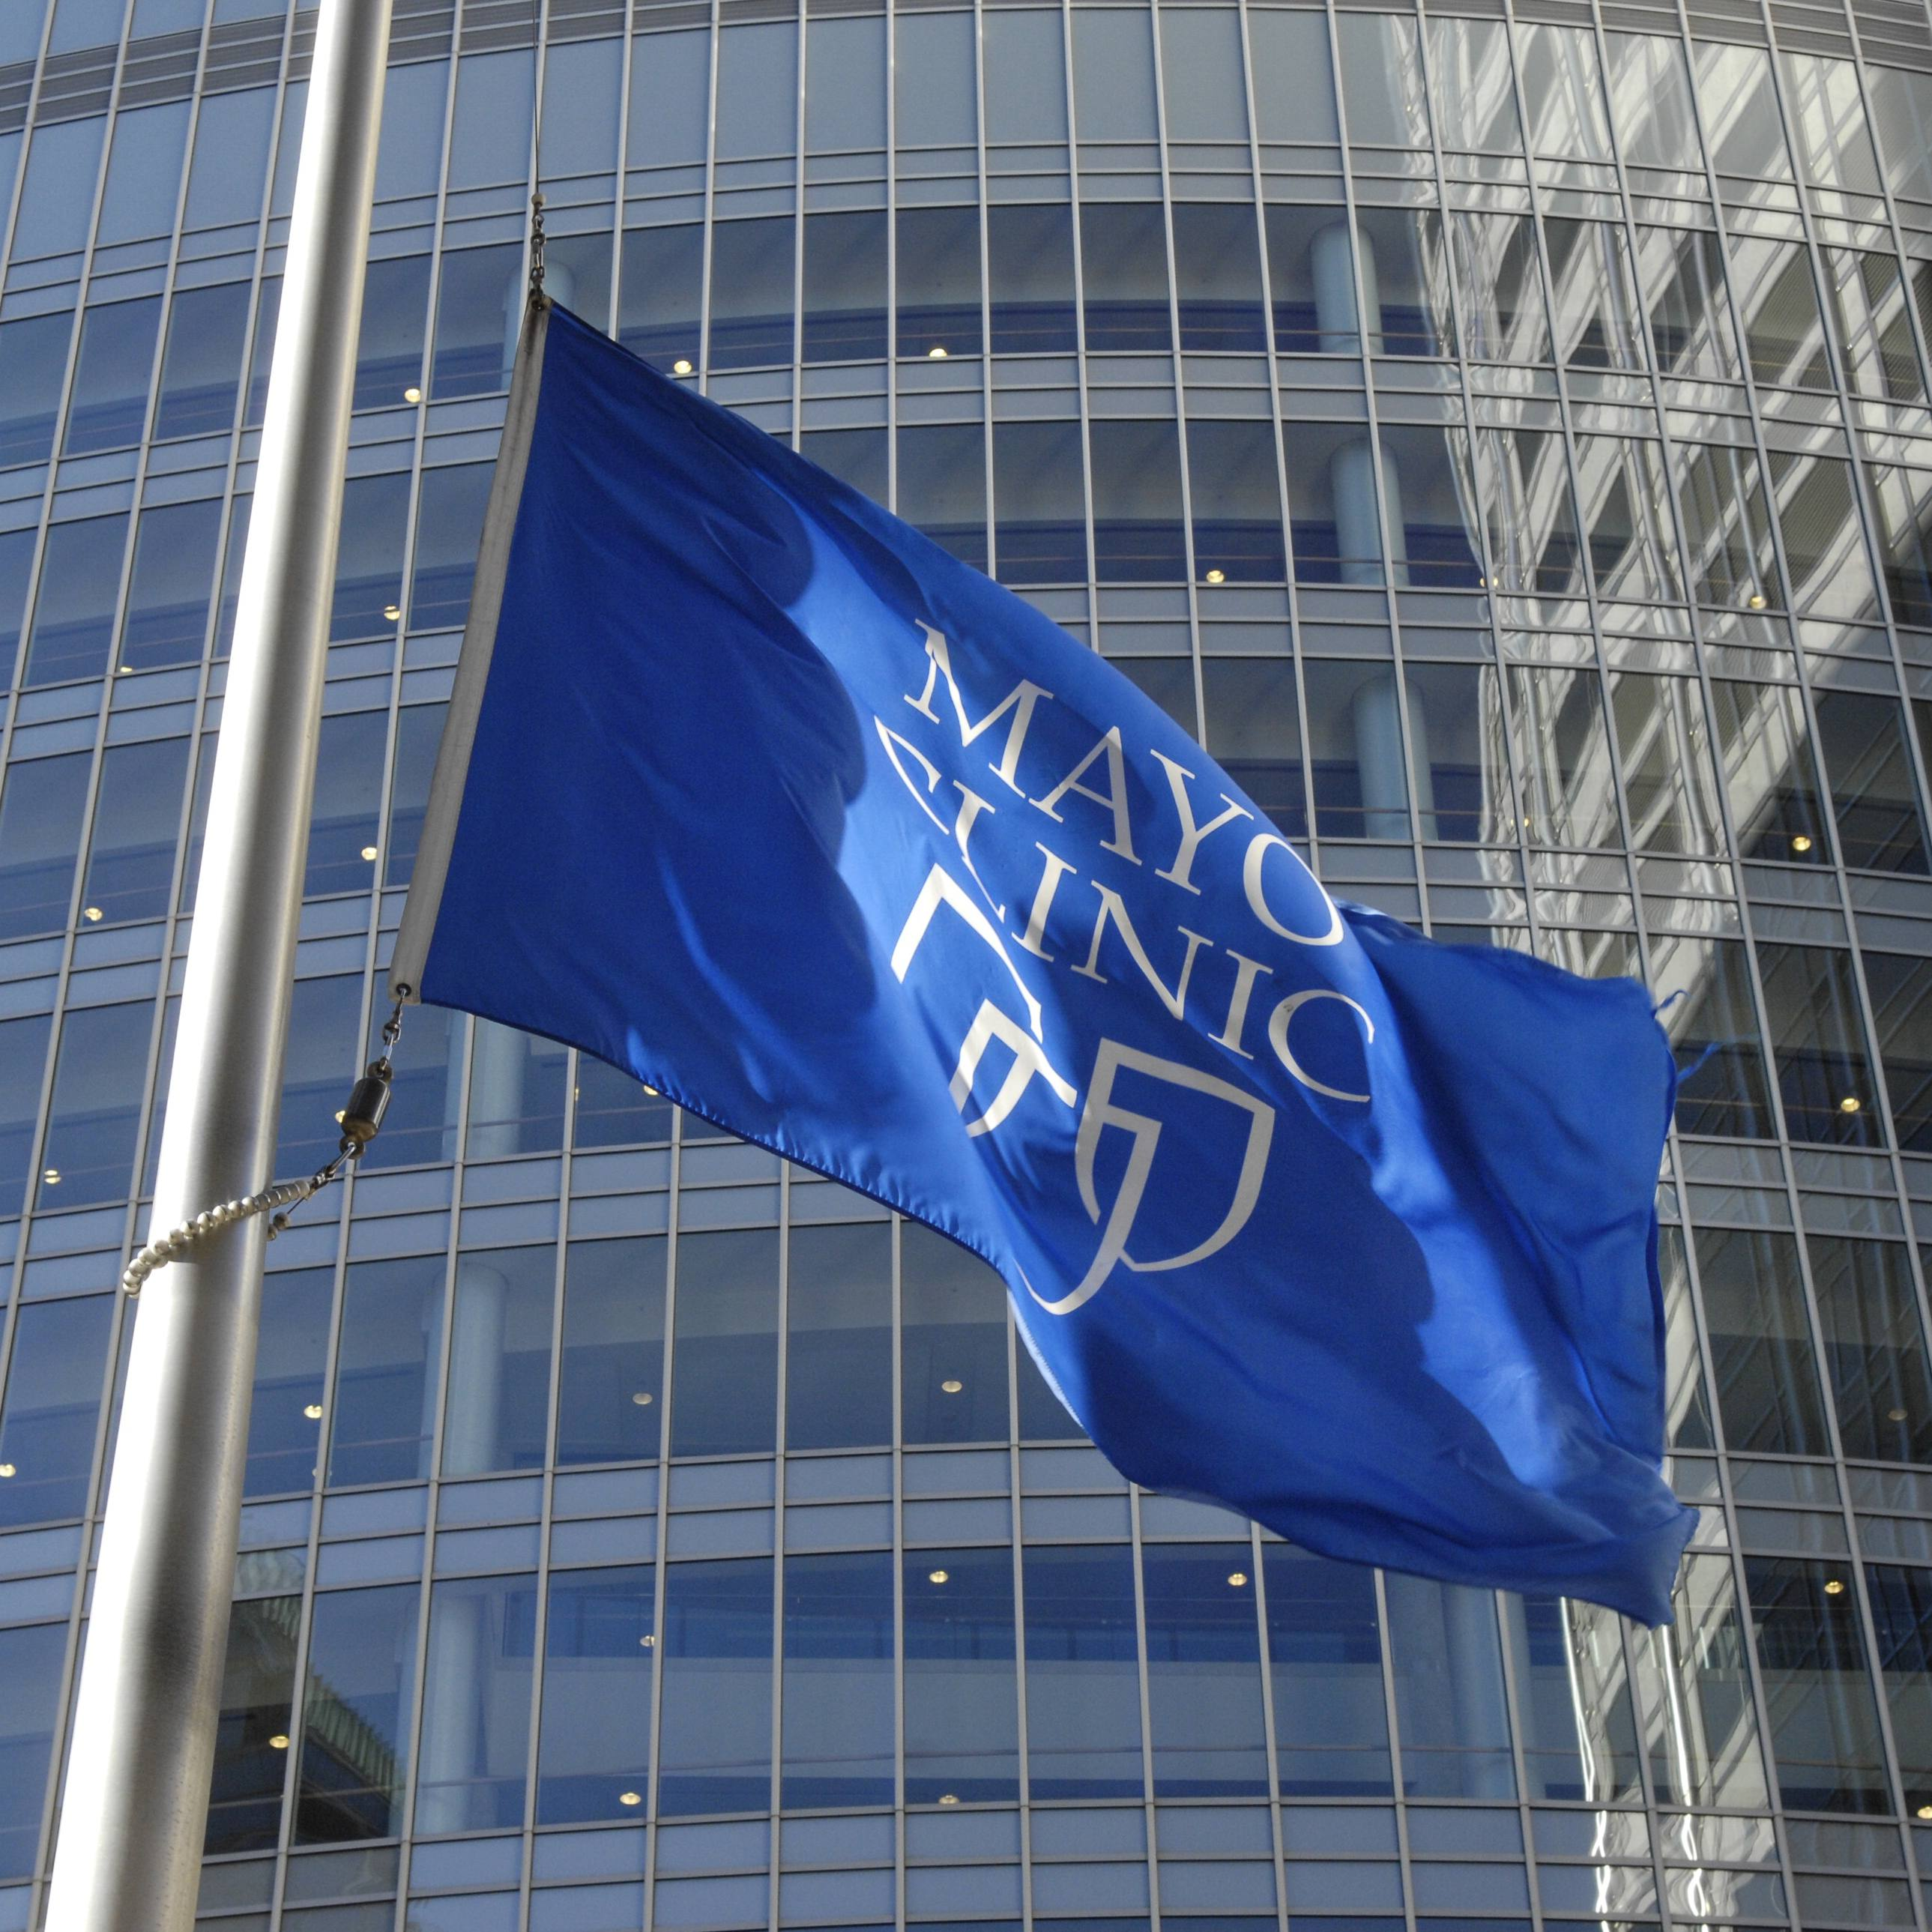 the blue and white Mayo Clinic shields flag flying outside the Gonda building windows in Rochester Minnesota